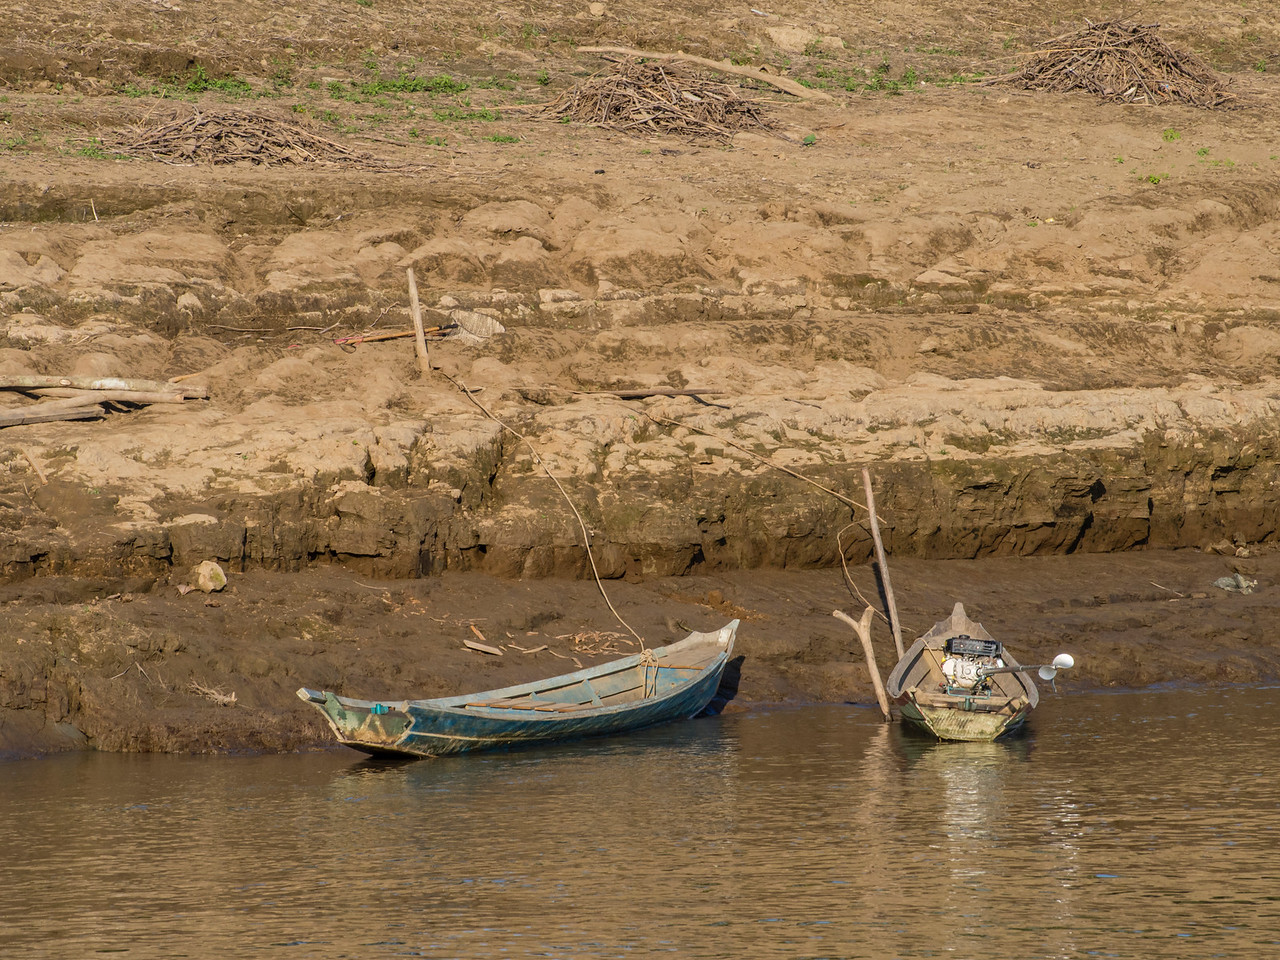 Life along the Chindwin River